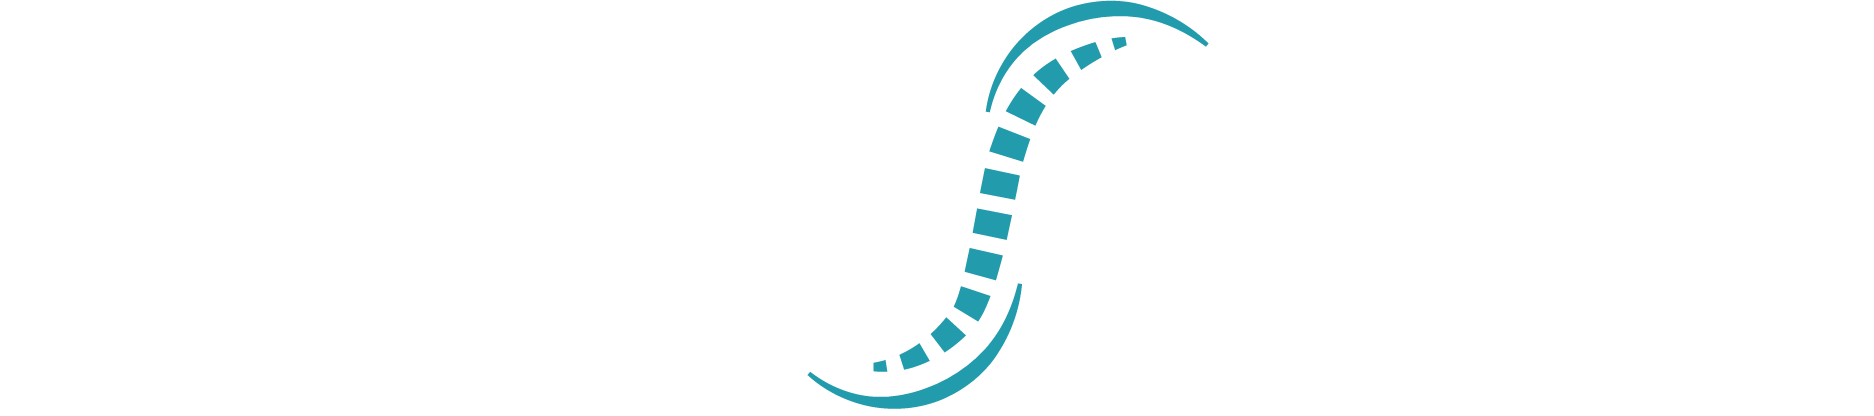 Chirosouth Spine and Sport